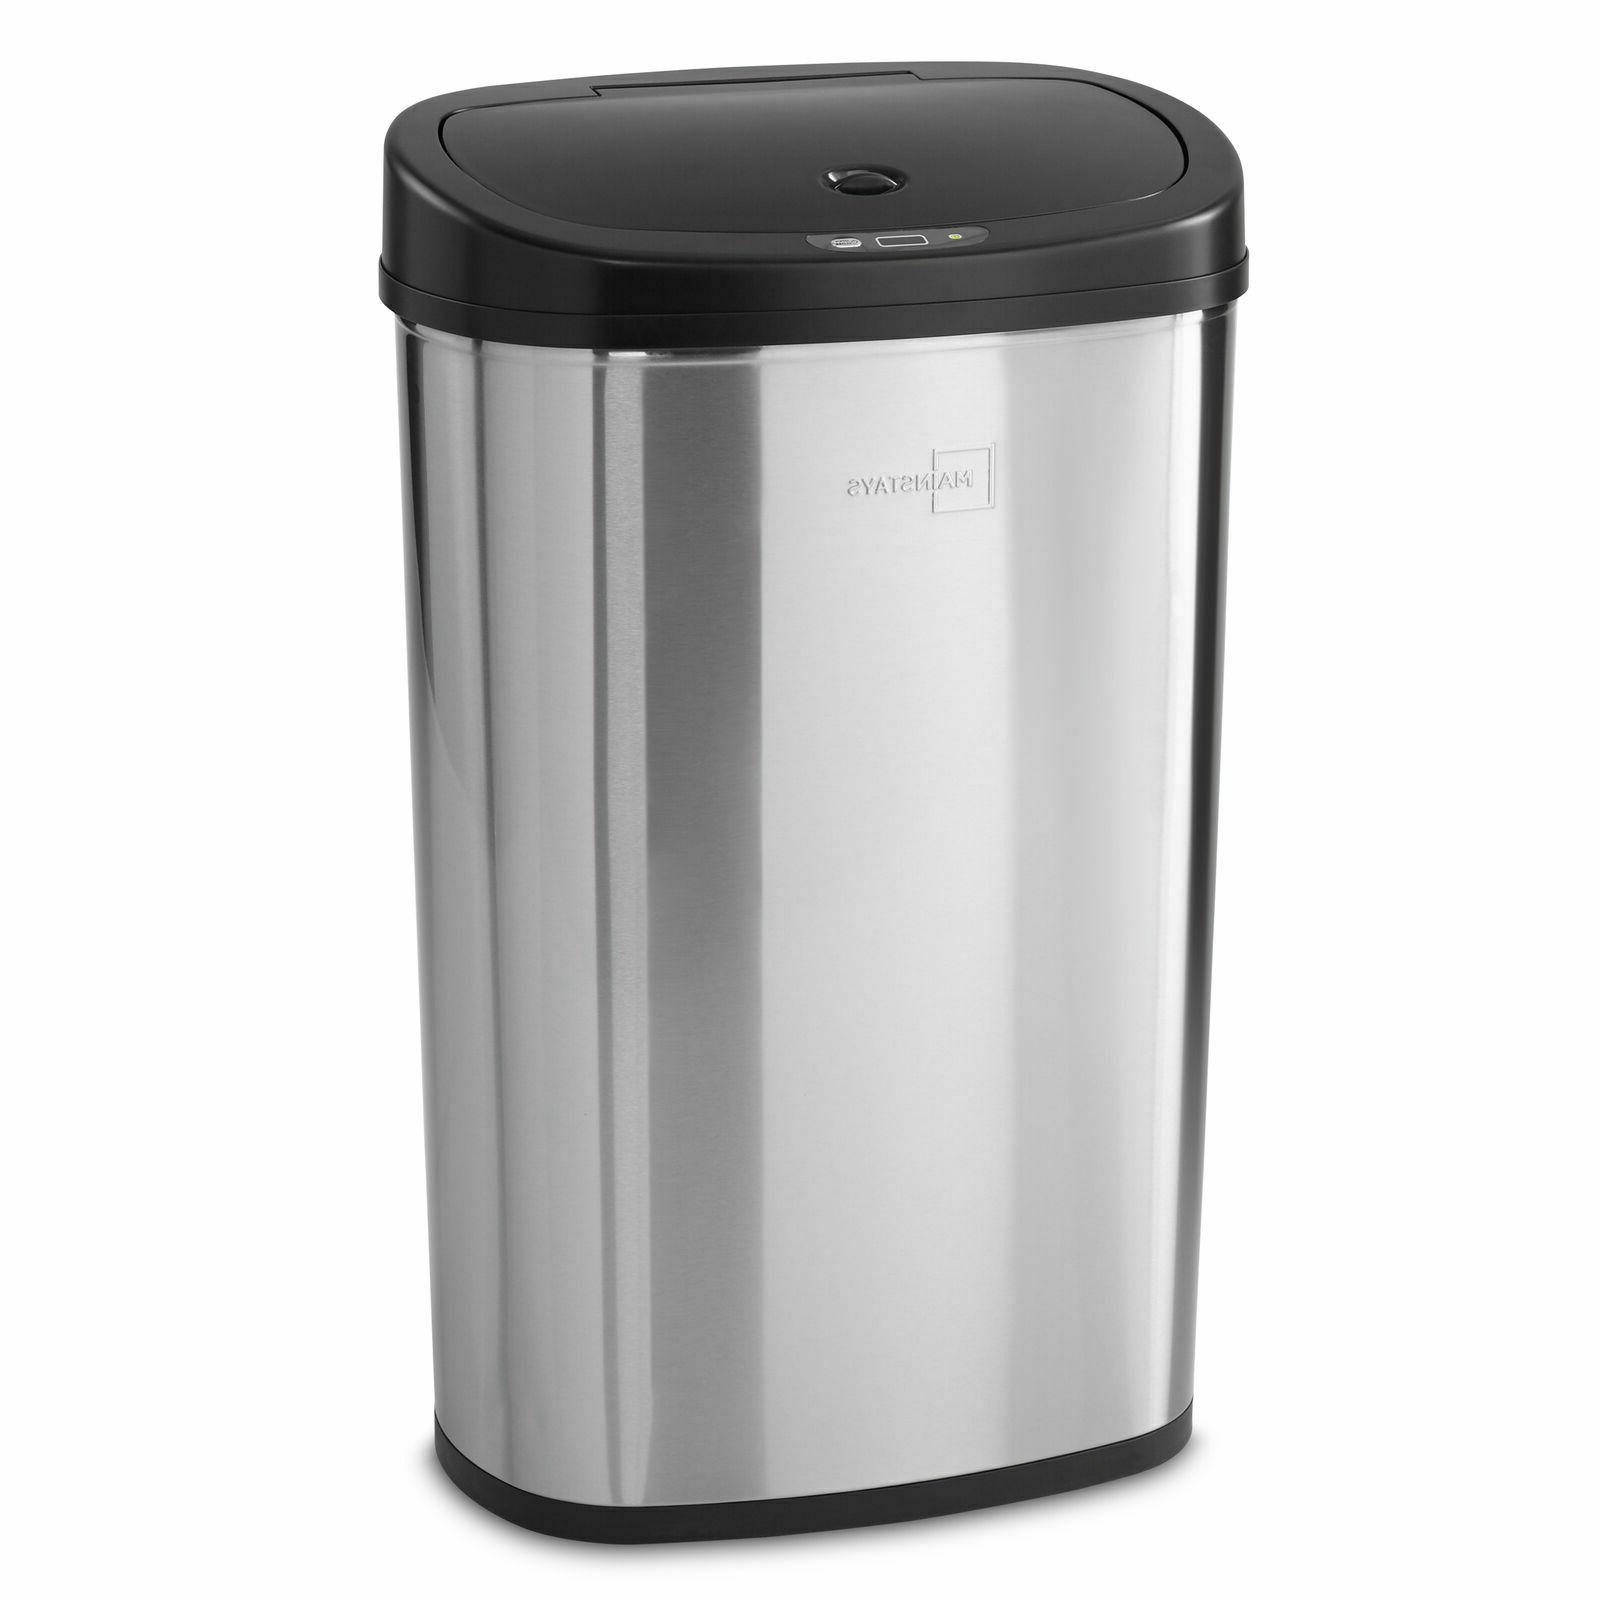 Trash Can Garbage Touchless Sensor Automatic Stainless Steel